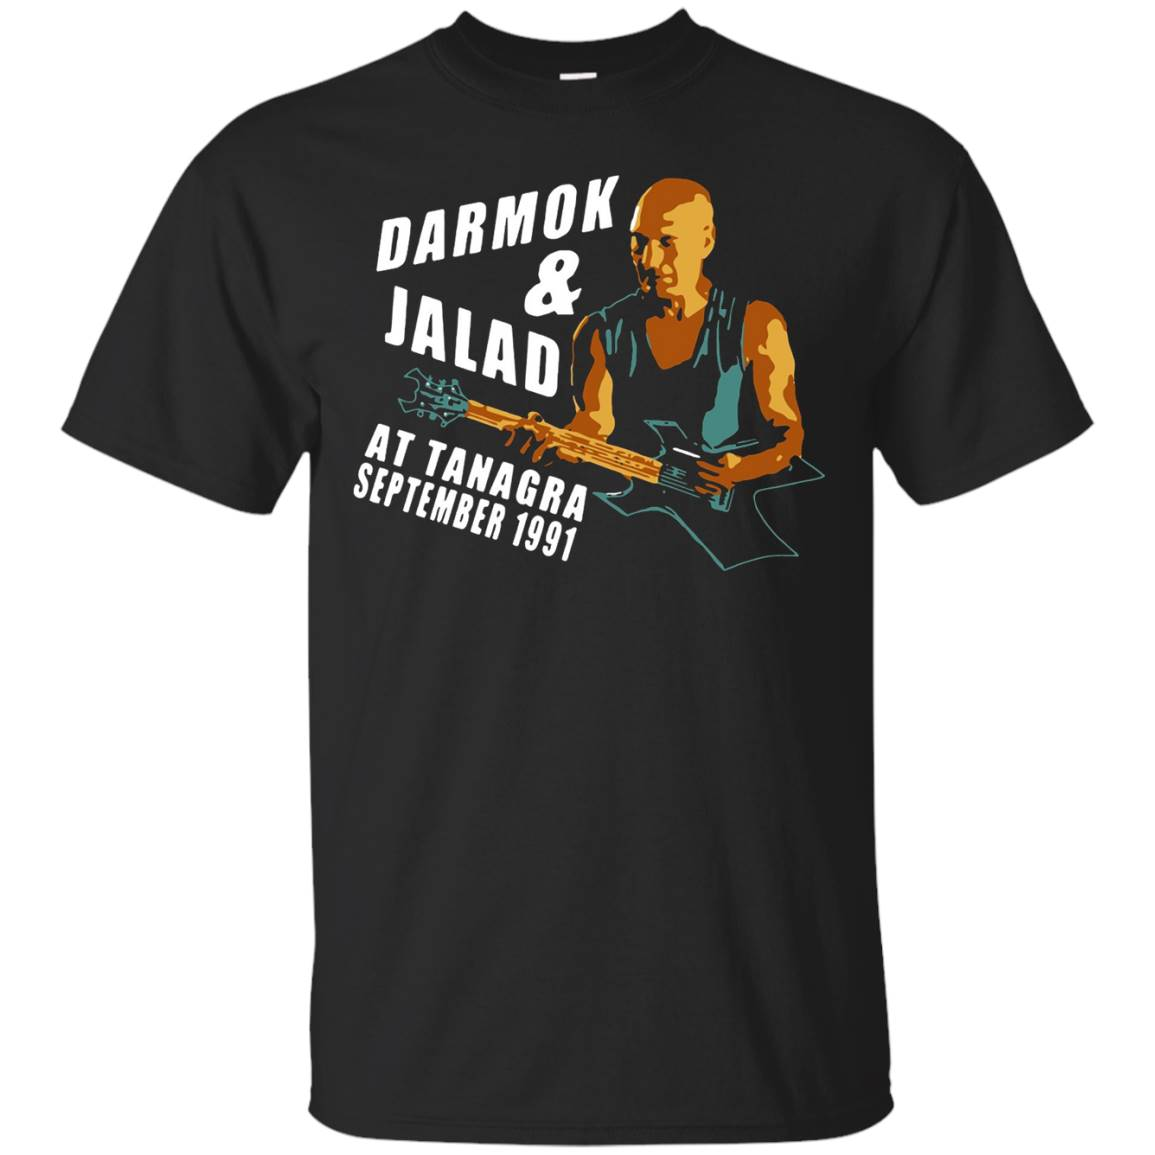 Darmok & Jalad at Tanagra ST TnG Shirts